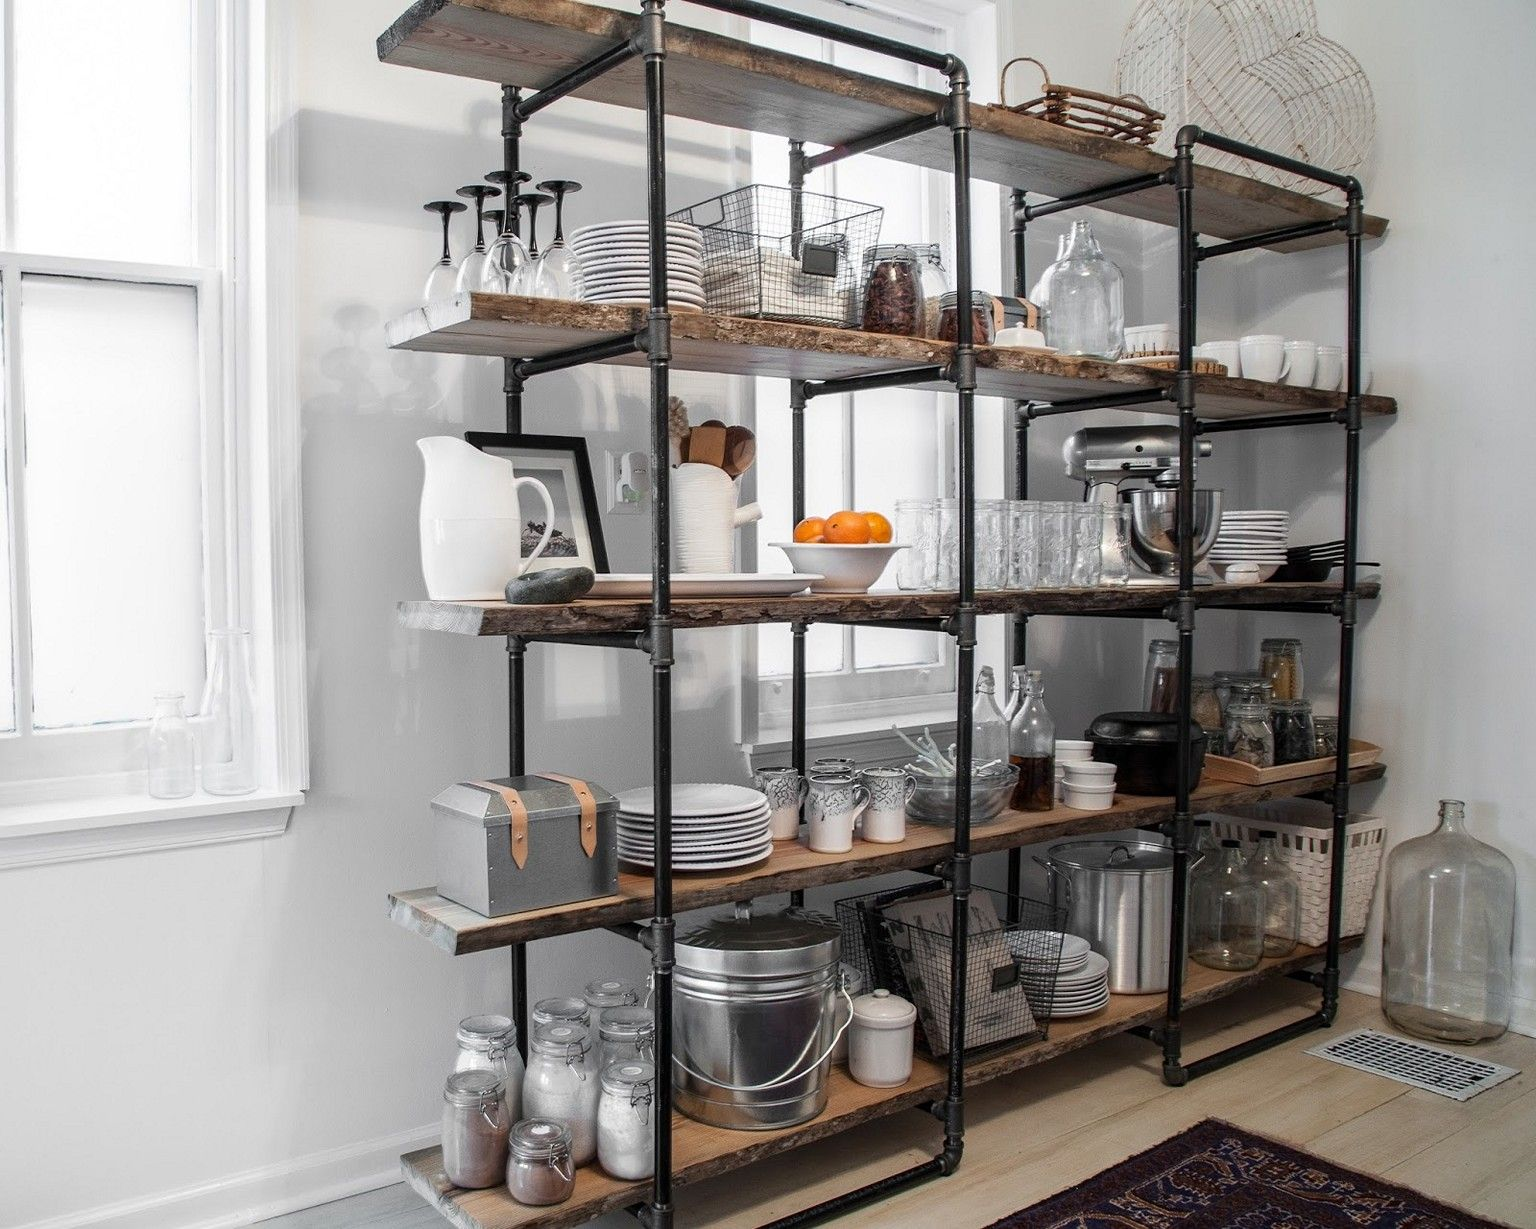 Charmant Marvelous Industrial Pipe Kitchen Shelving Images Design Inspiration